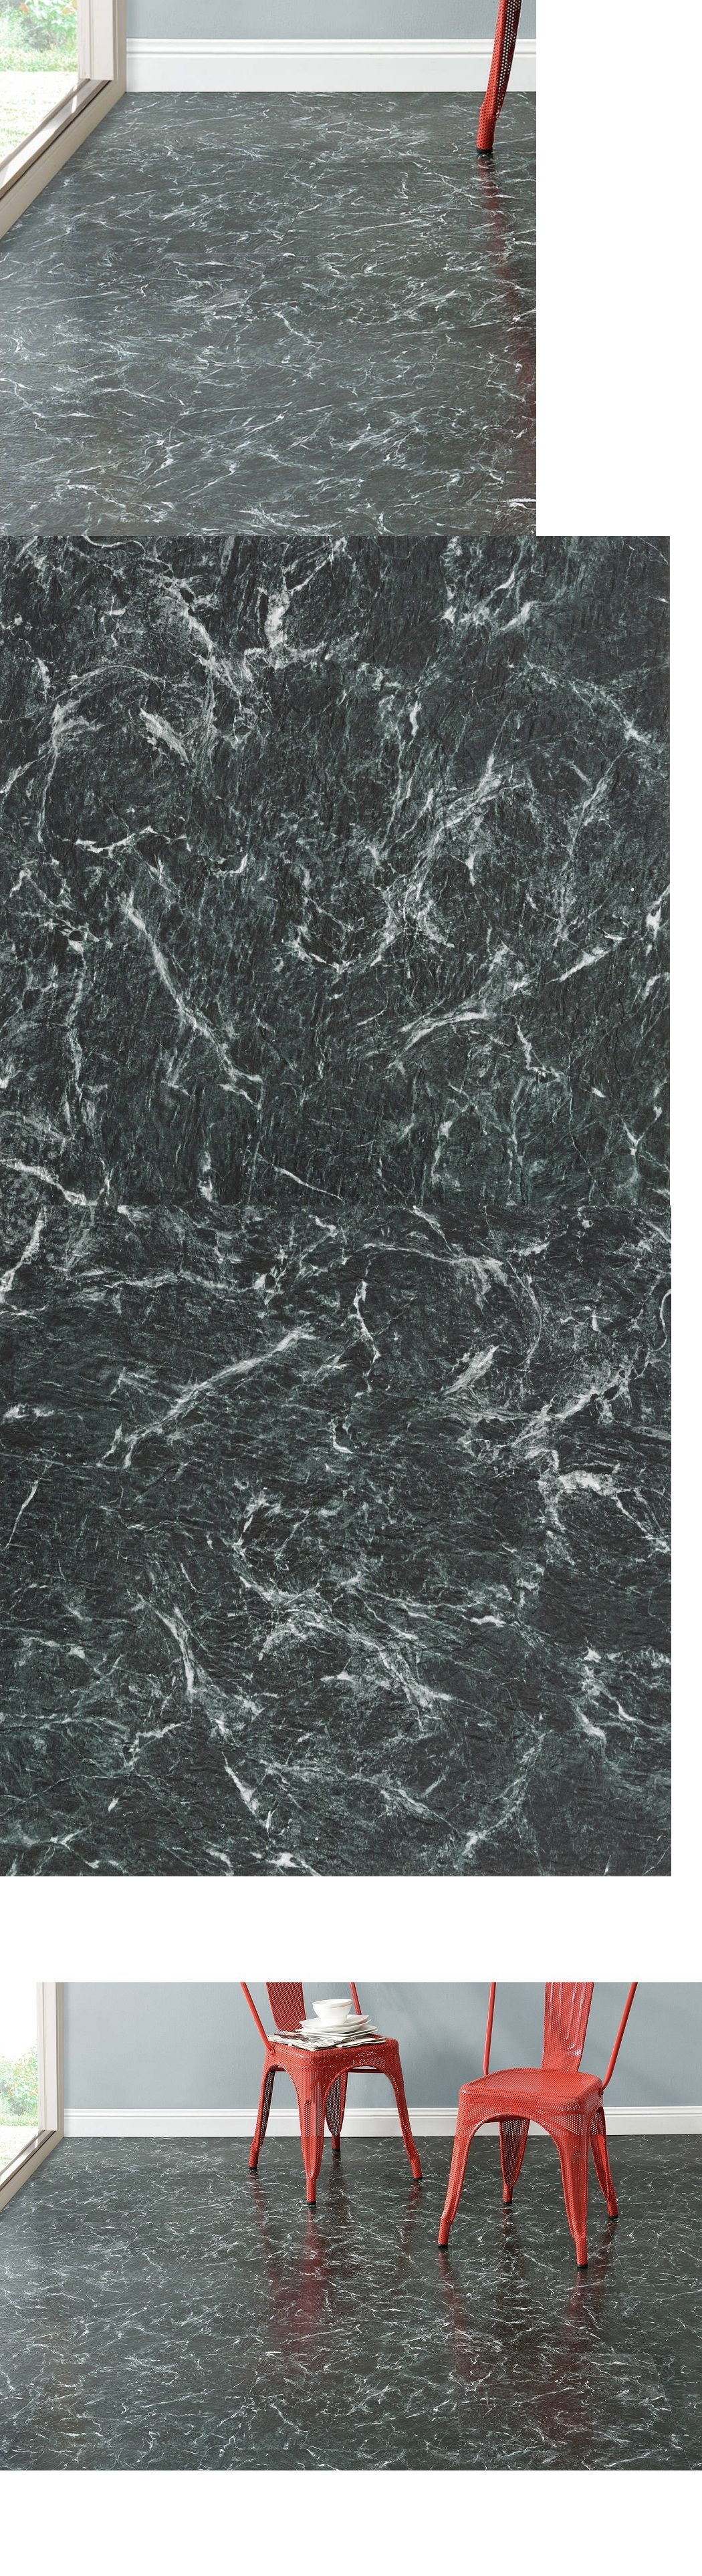 Laminate and vinyl flooring 85914 peel and stick tile self adhesive laminate and vinyl flooring 85914 peel and stick tile self adhesive vinyl flooring marble kitchen dailygadgetfo Images